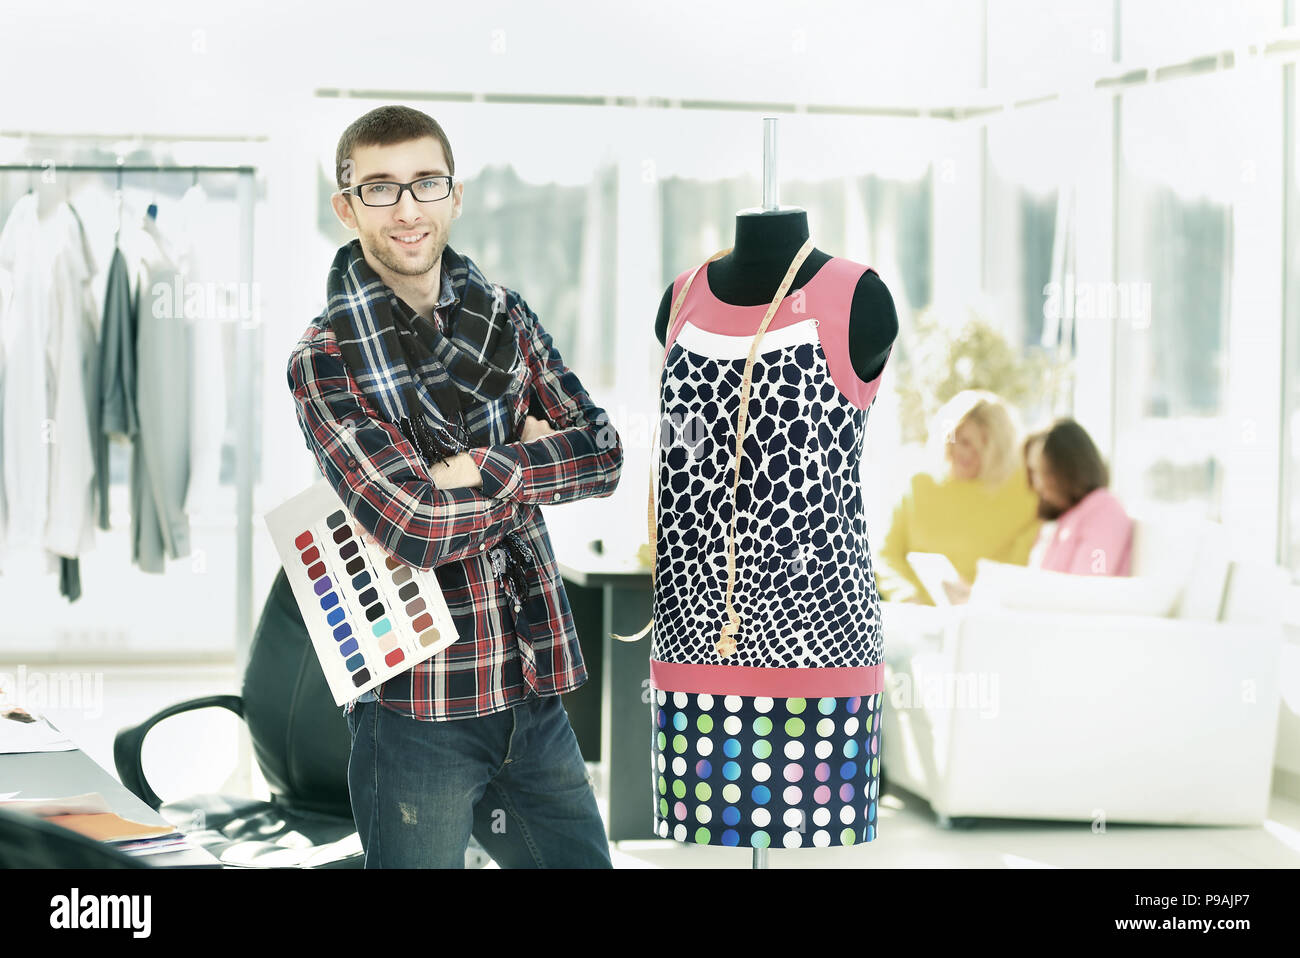 modern designer selects colors for a new collection of clothes - Stock Image